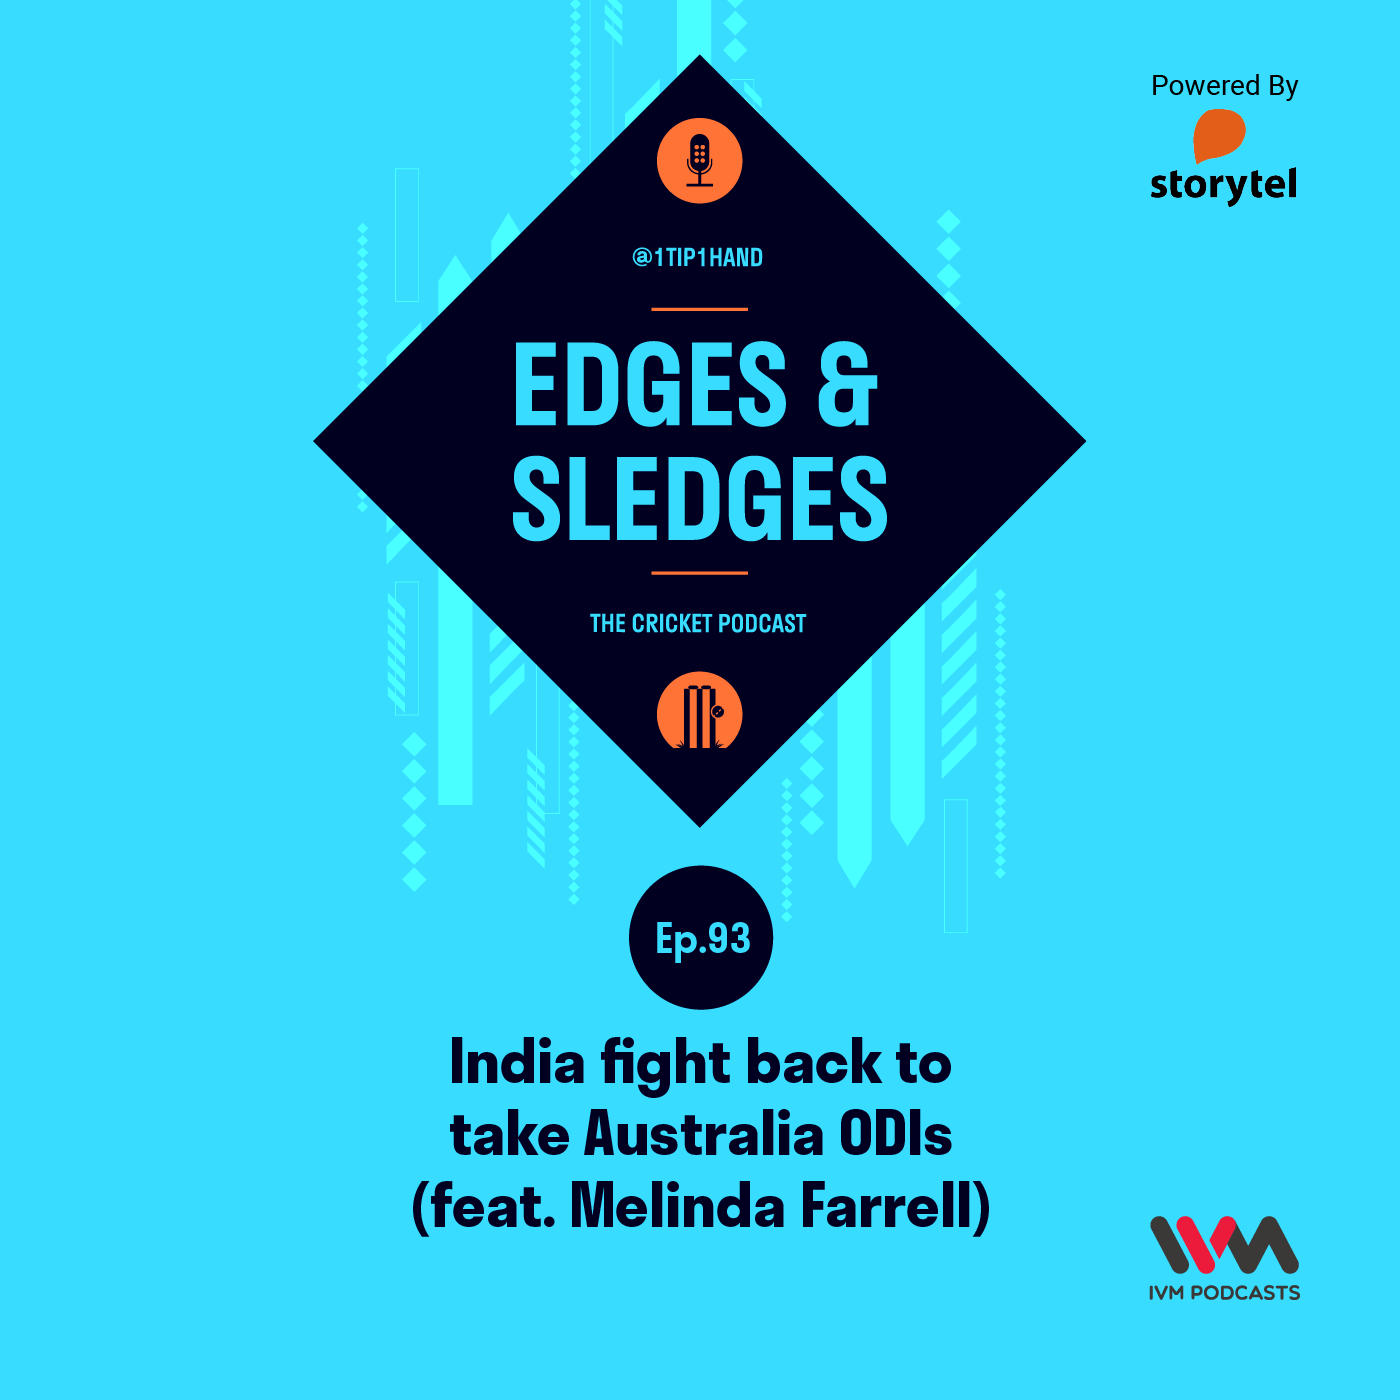 Ep. 93: India fight back to take Australia ODIs (feat. Melinda Farrell)